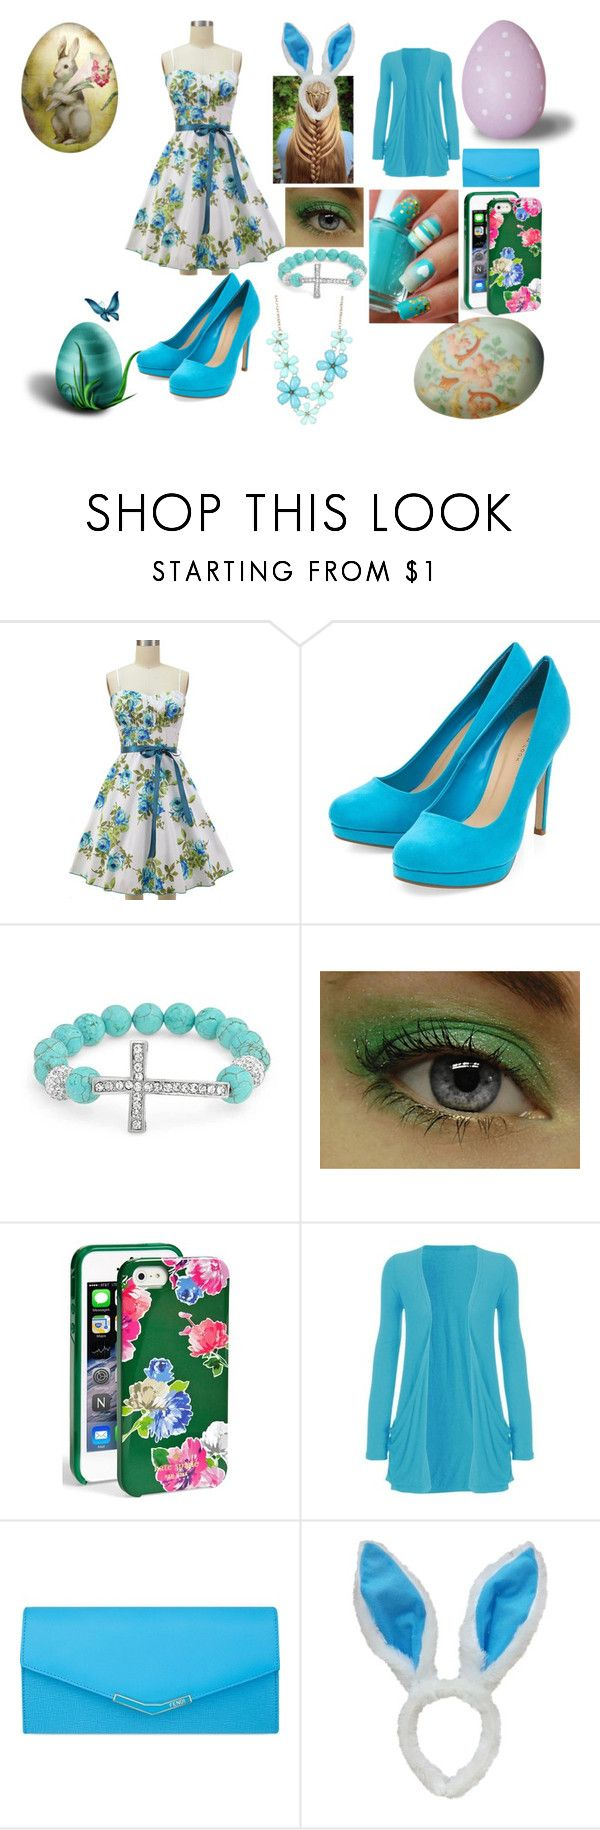 """Happy Easter Sunday!"" by kiara-fleming ❤ liked on Polyvore featuring Bling Jewelry, Kate Spade and Fendi"